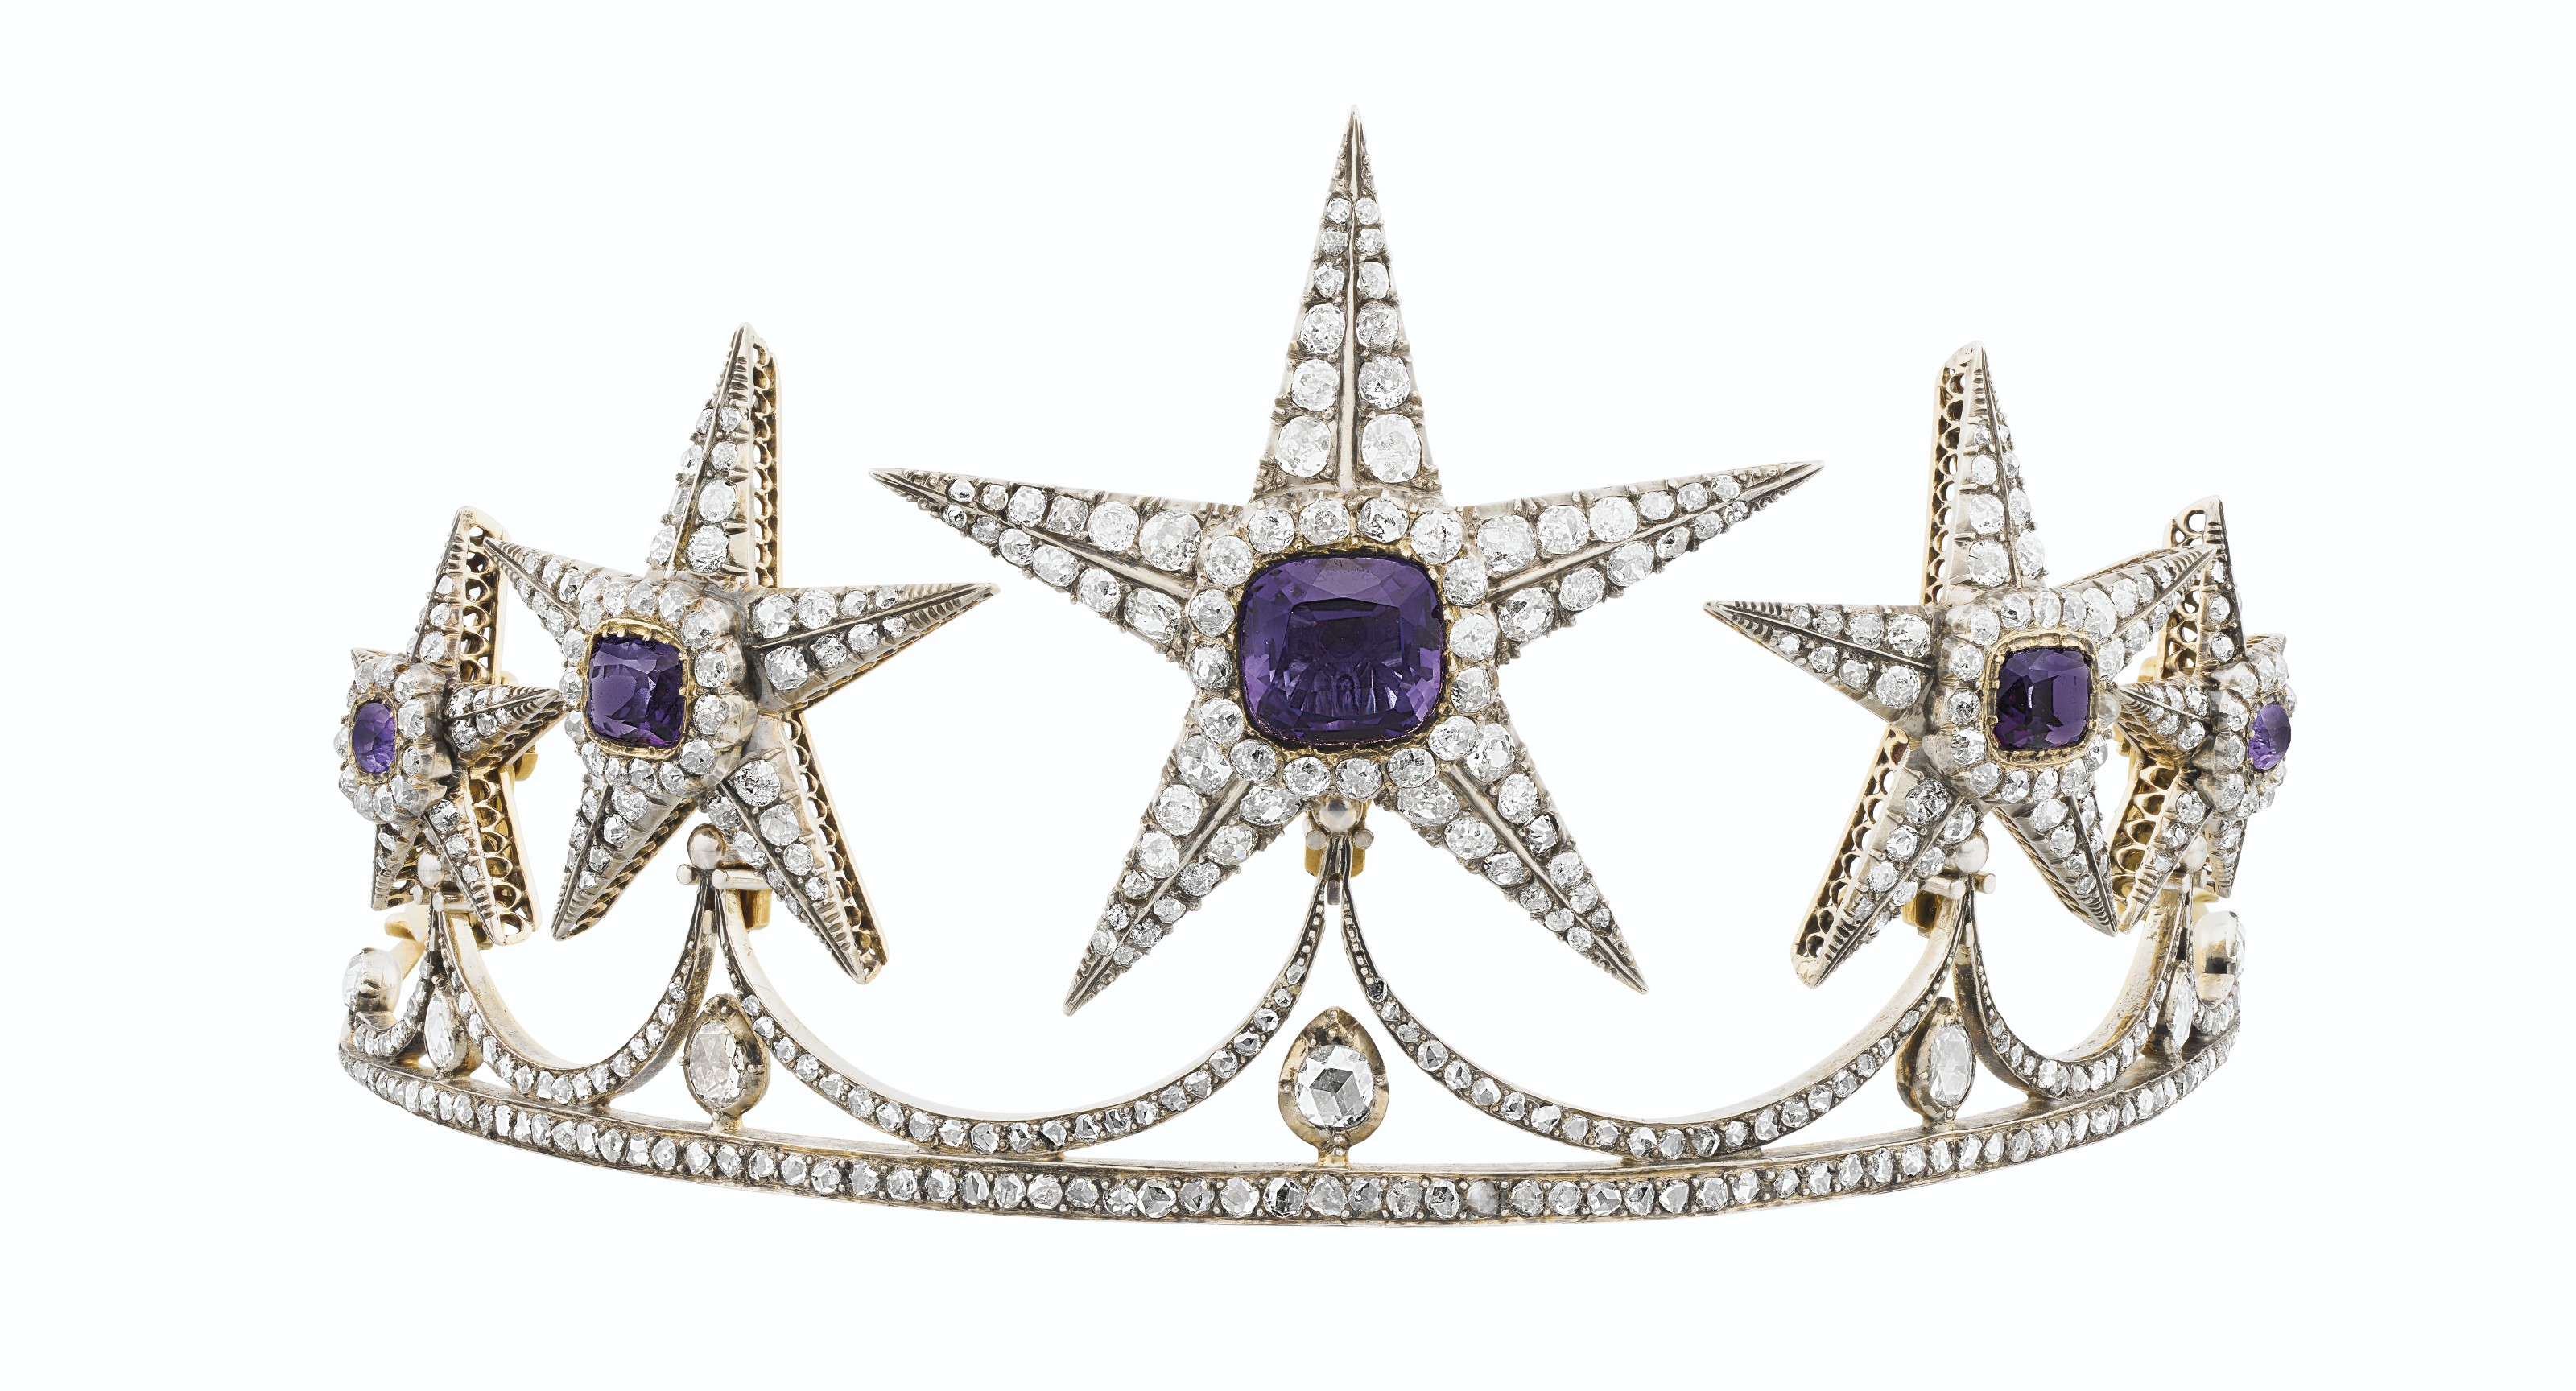 ANTIQUE AMETHYST AND DIAMOND TIARA